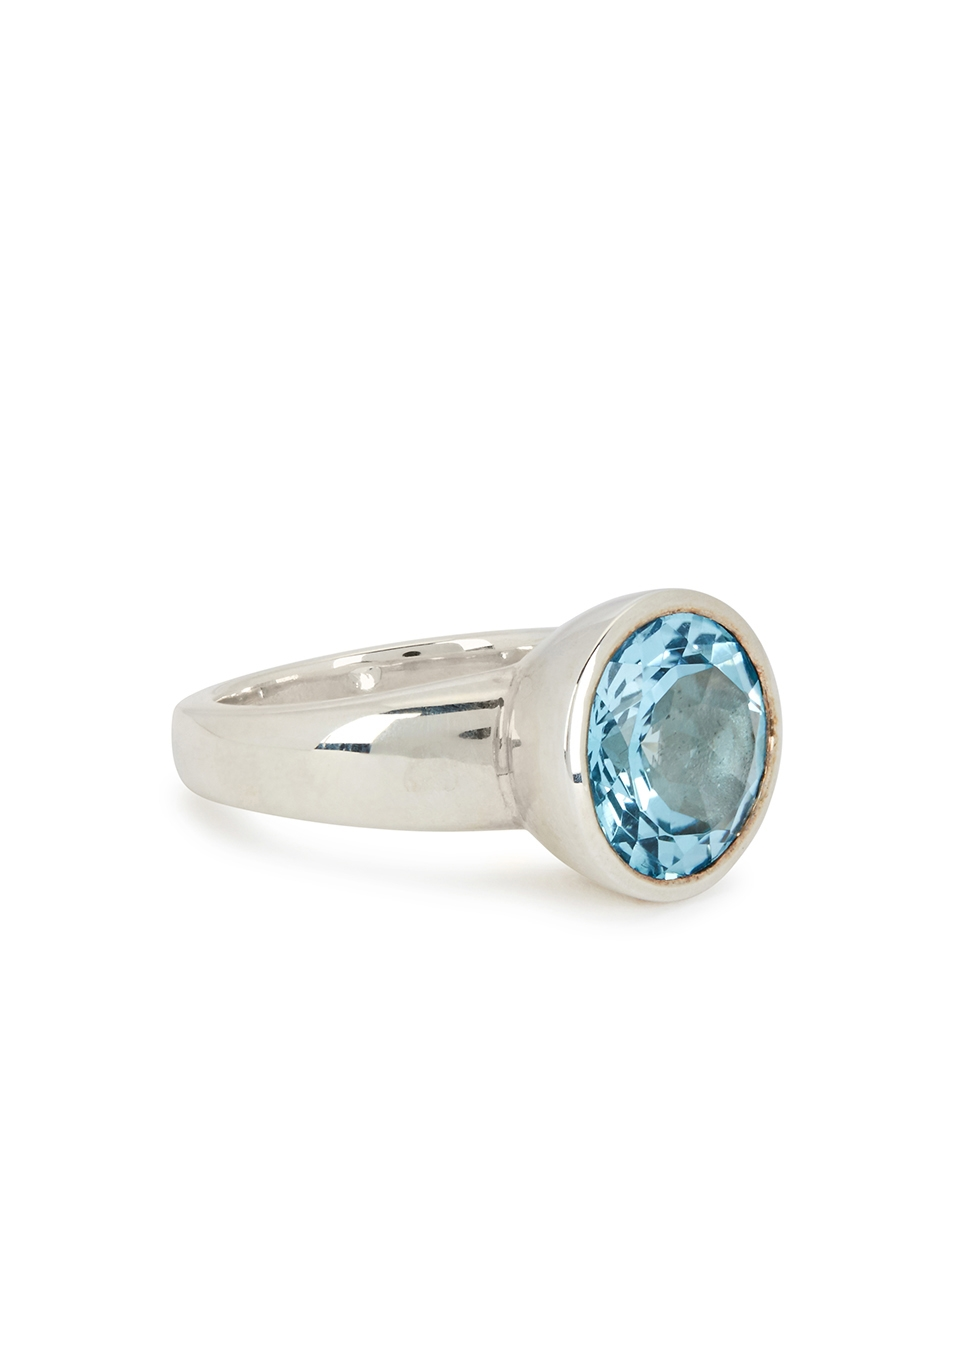 MUSE STUDIO Blue Topaz Sterling Silver Ring